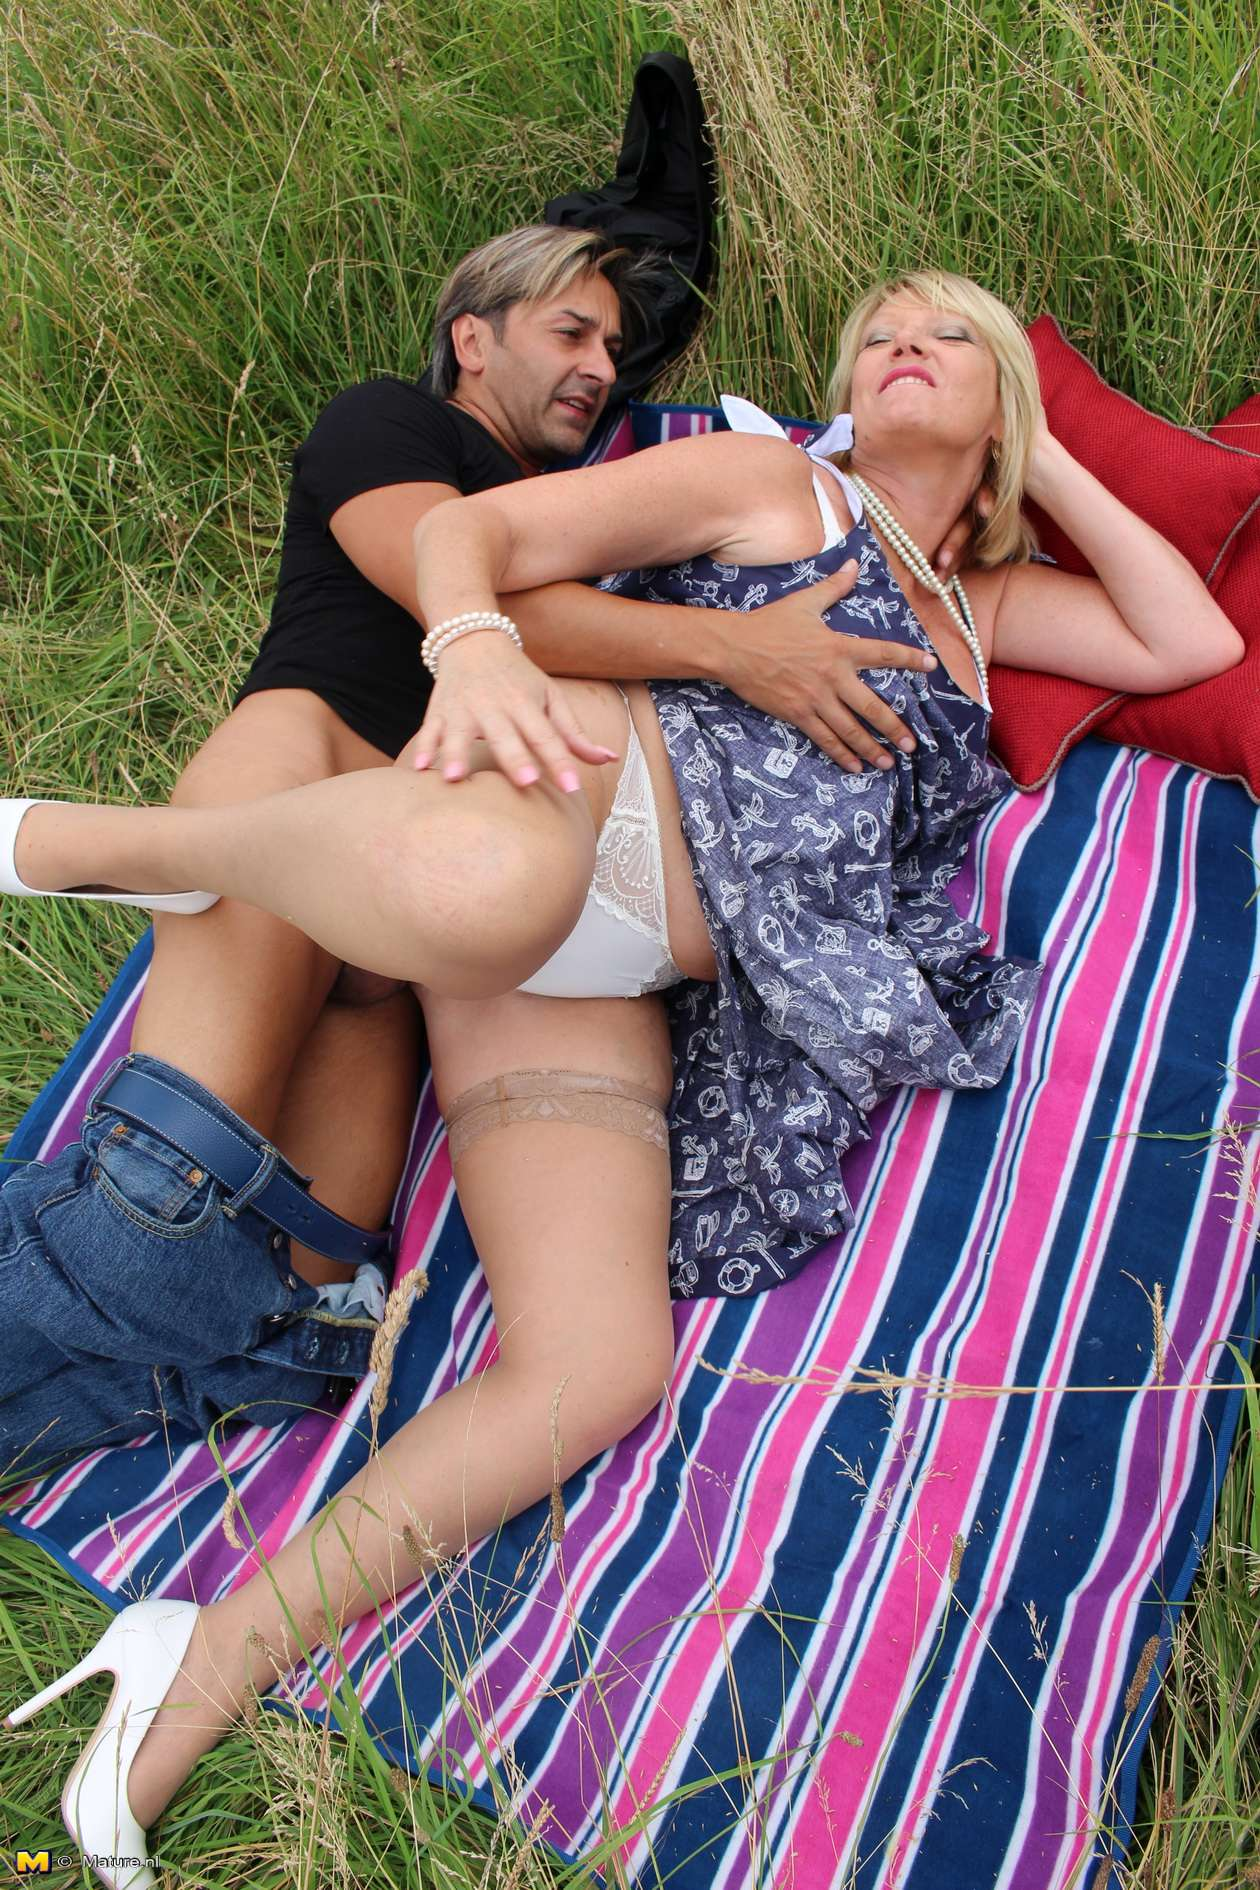 Naughty British housewife Amy fucking in an open field